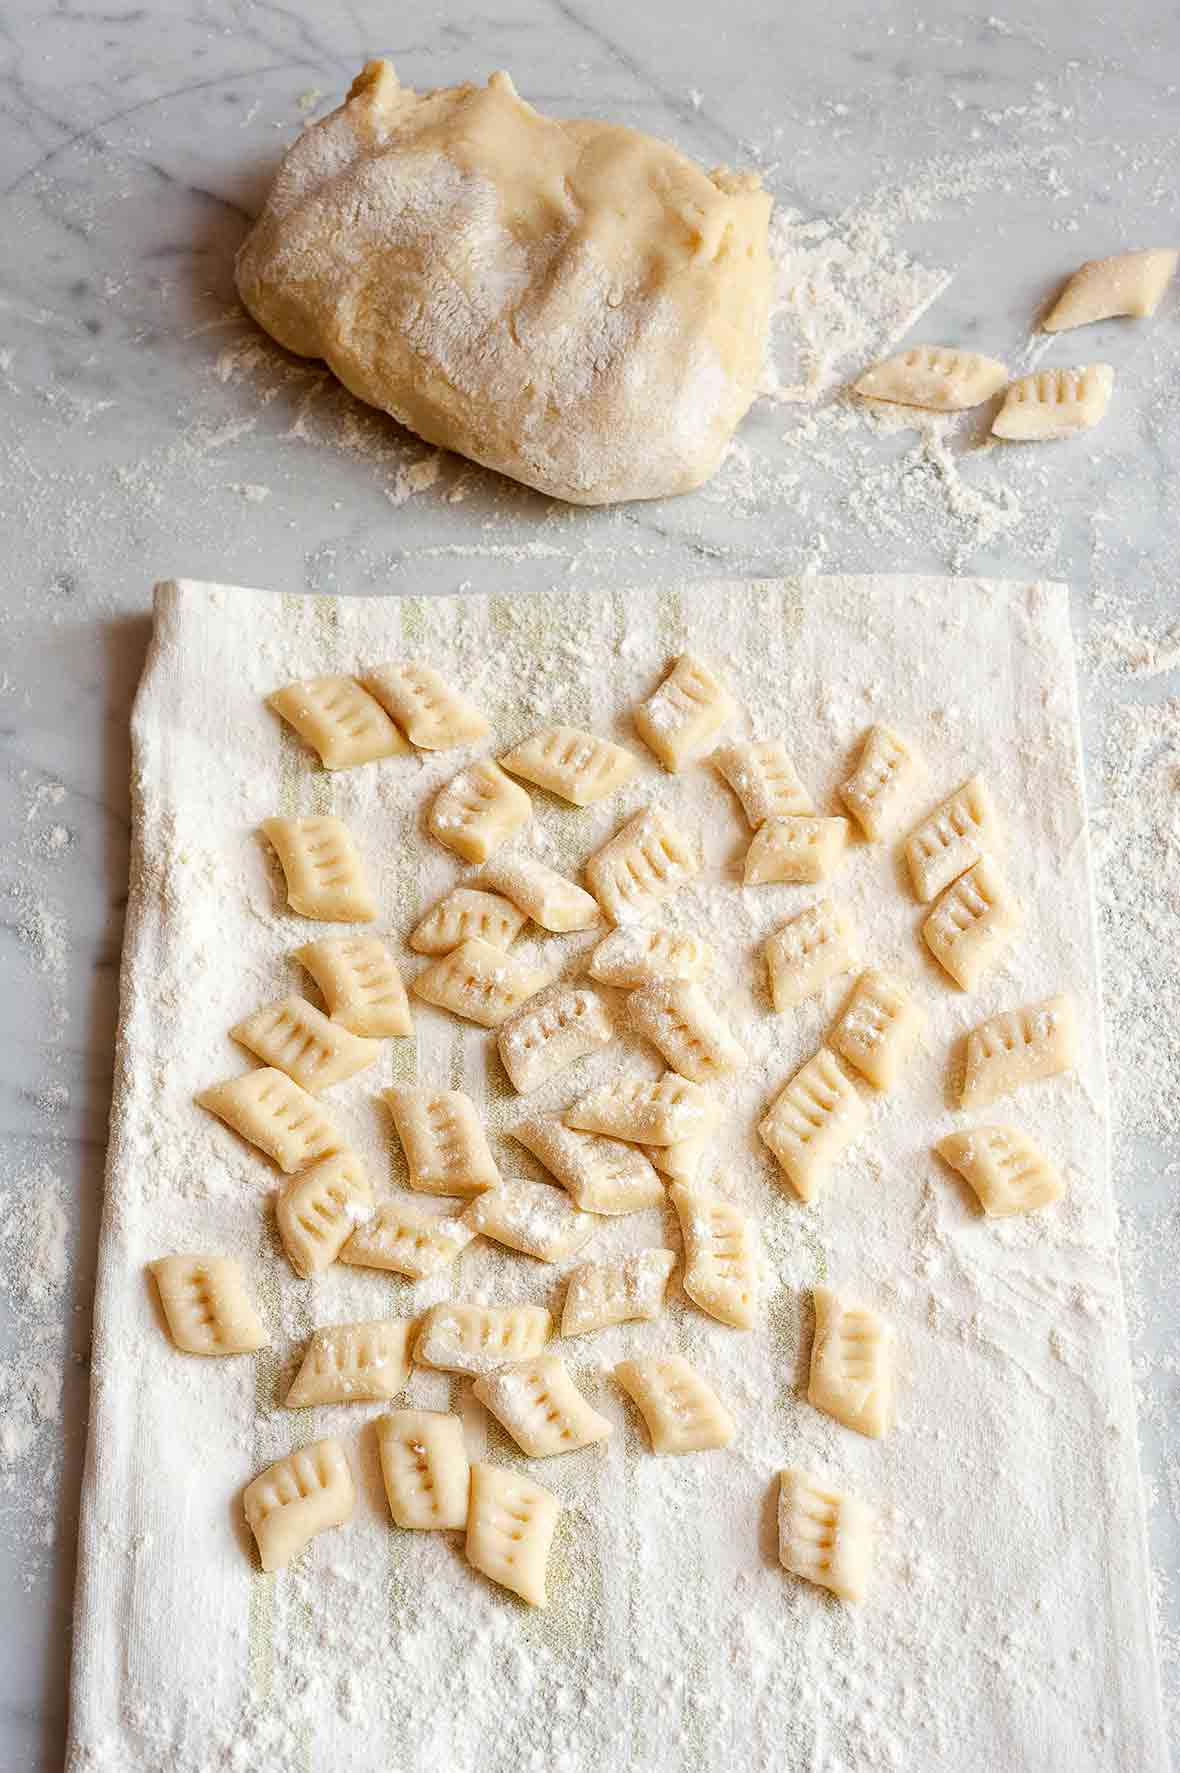 Many prepared potato gnocchi on a floured kitchen towel, with a mound of gnocchi dough in the background